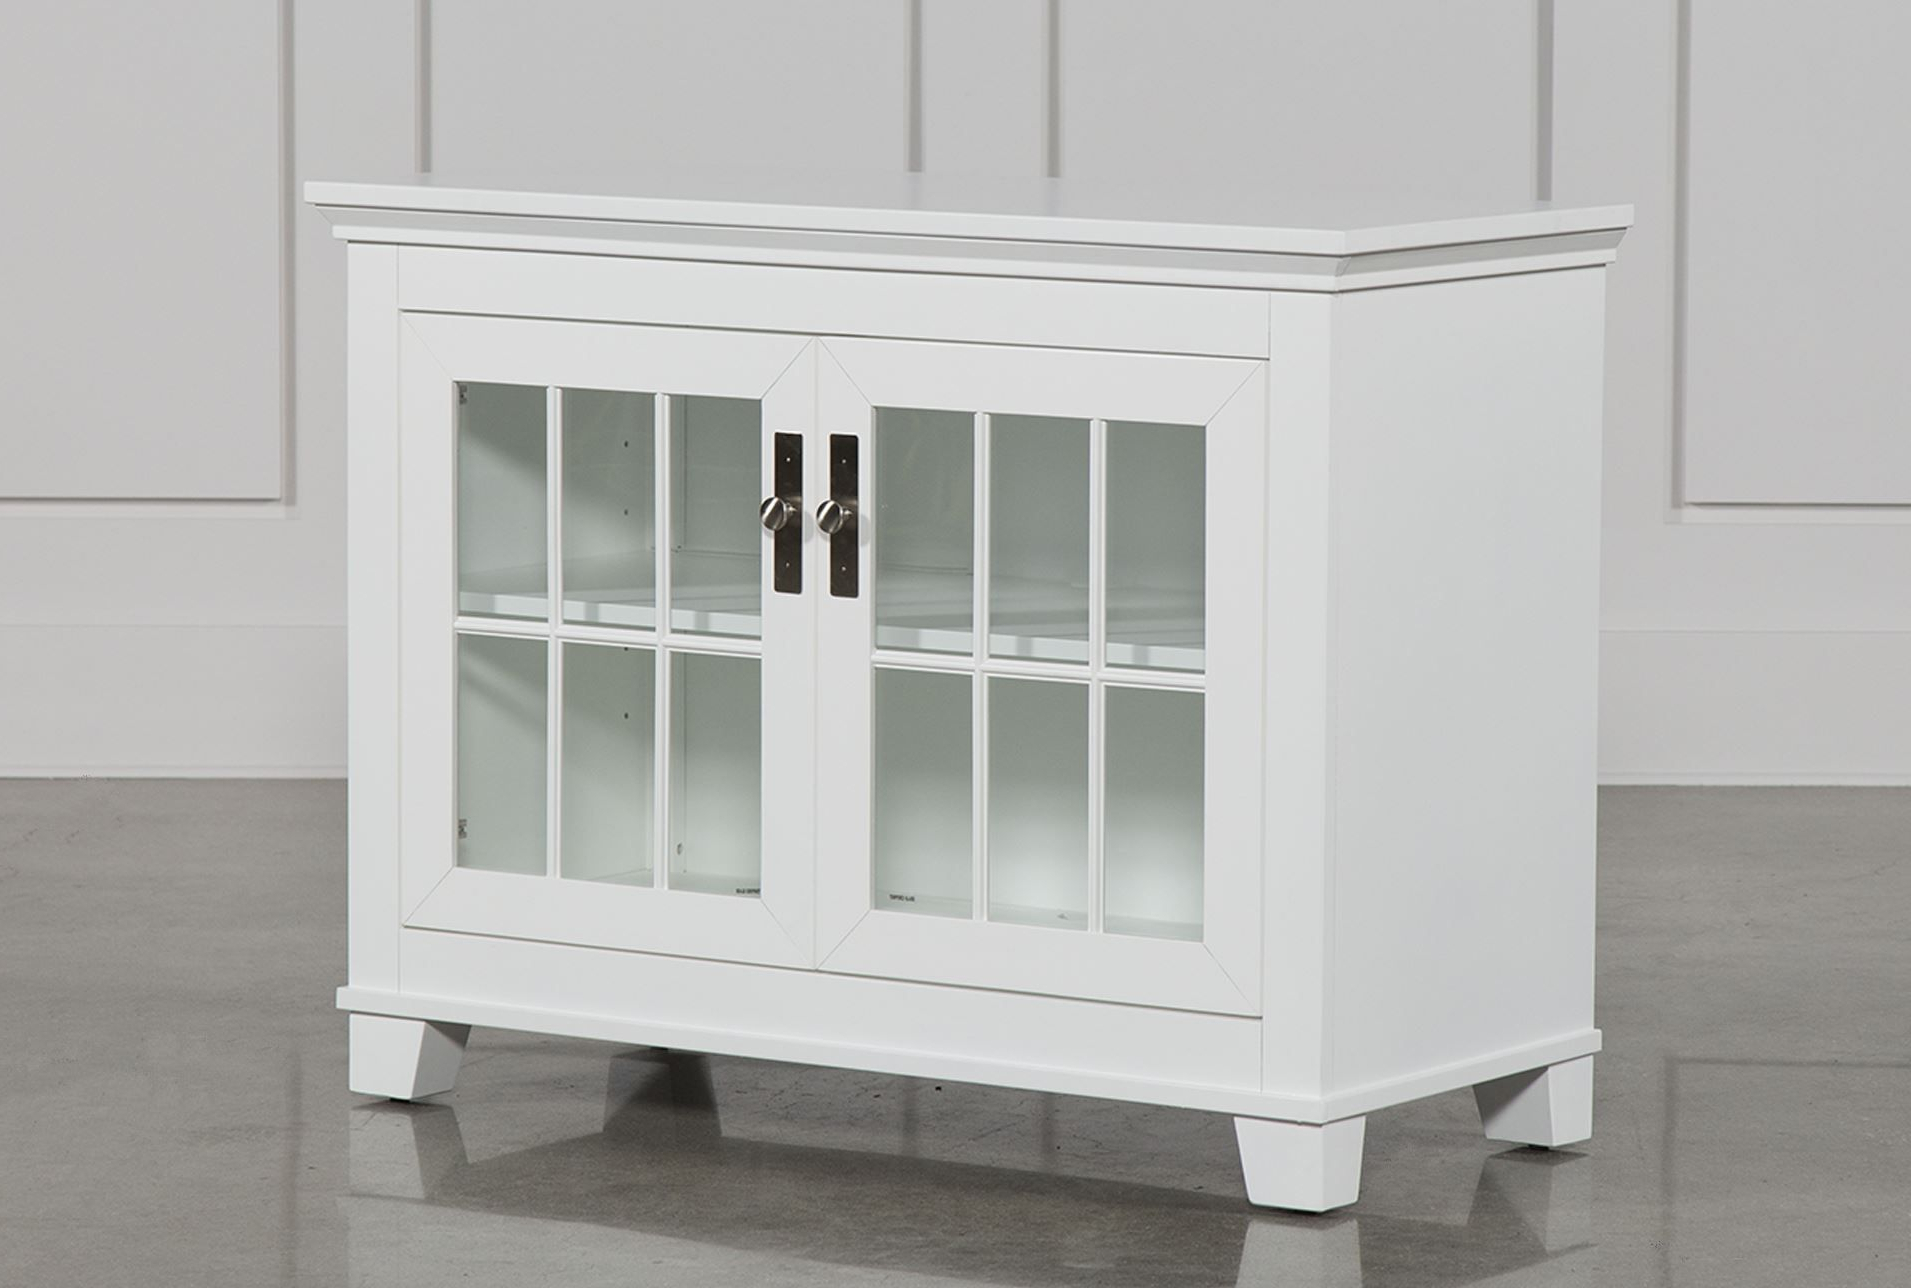 295 Living Hamden White 43 Inch Tv Console | Playroom | Pinterest With Sinclair White 54 Inch Tv Stands (View 10 of 20)